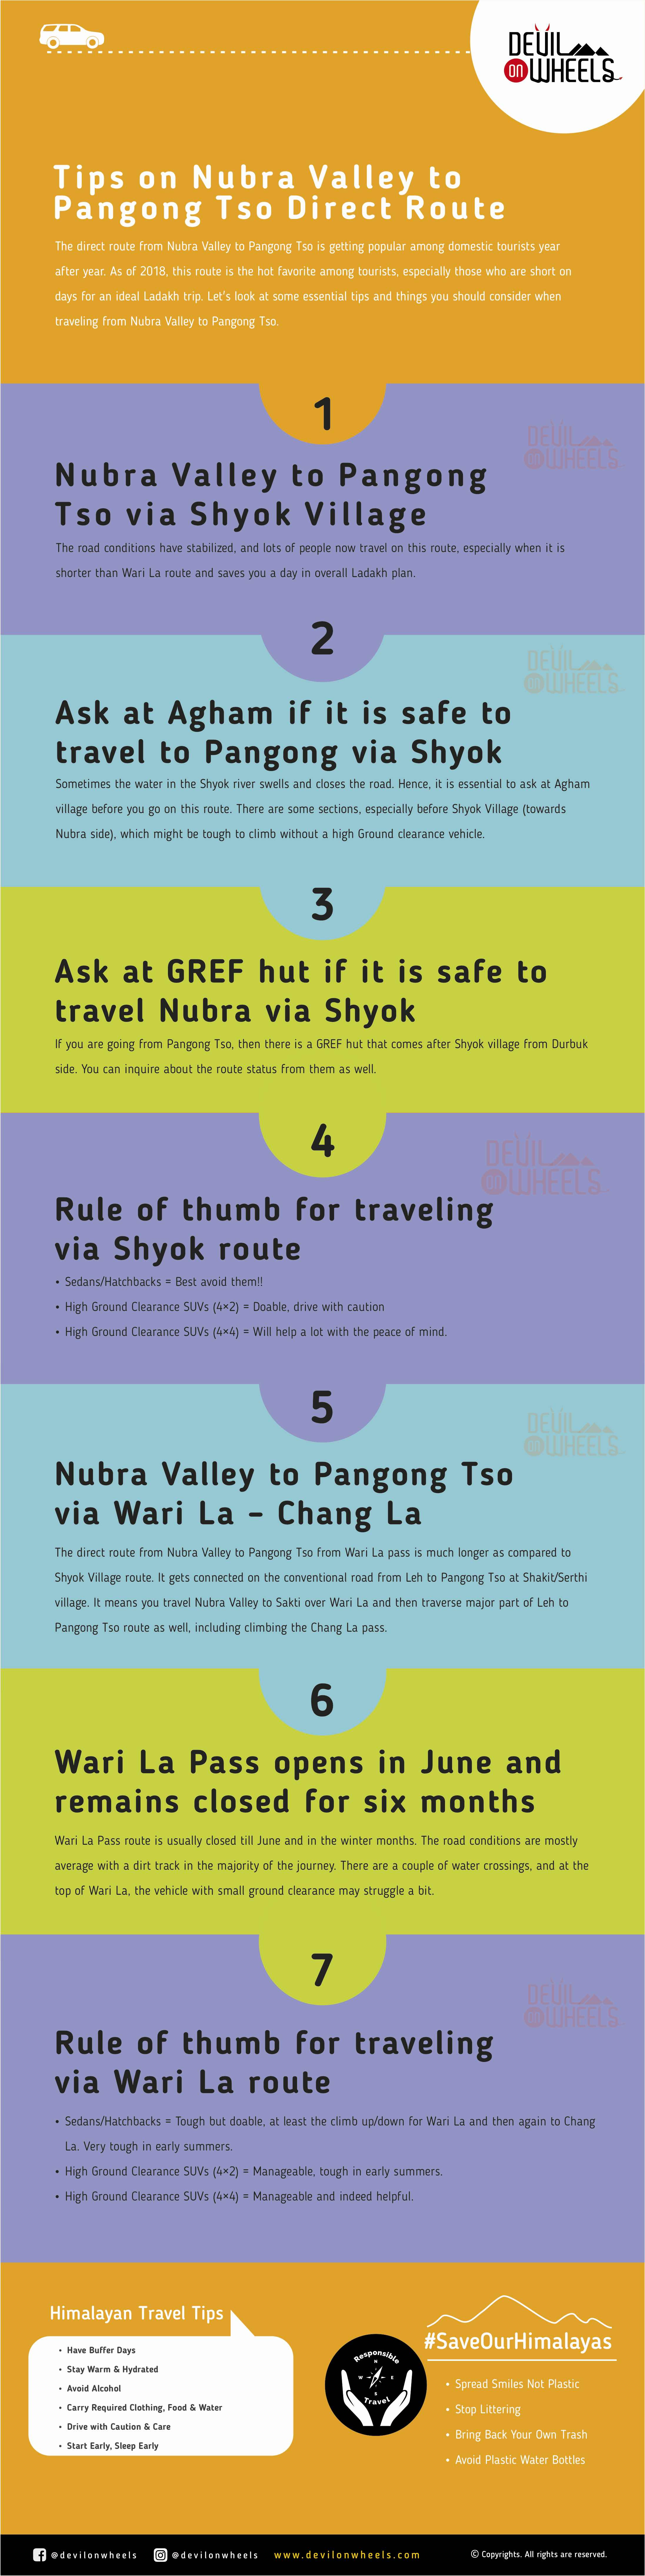 Tips about traveling directly from Nubra Valley to Pangong Tso